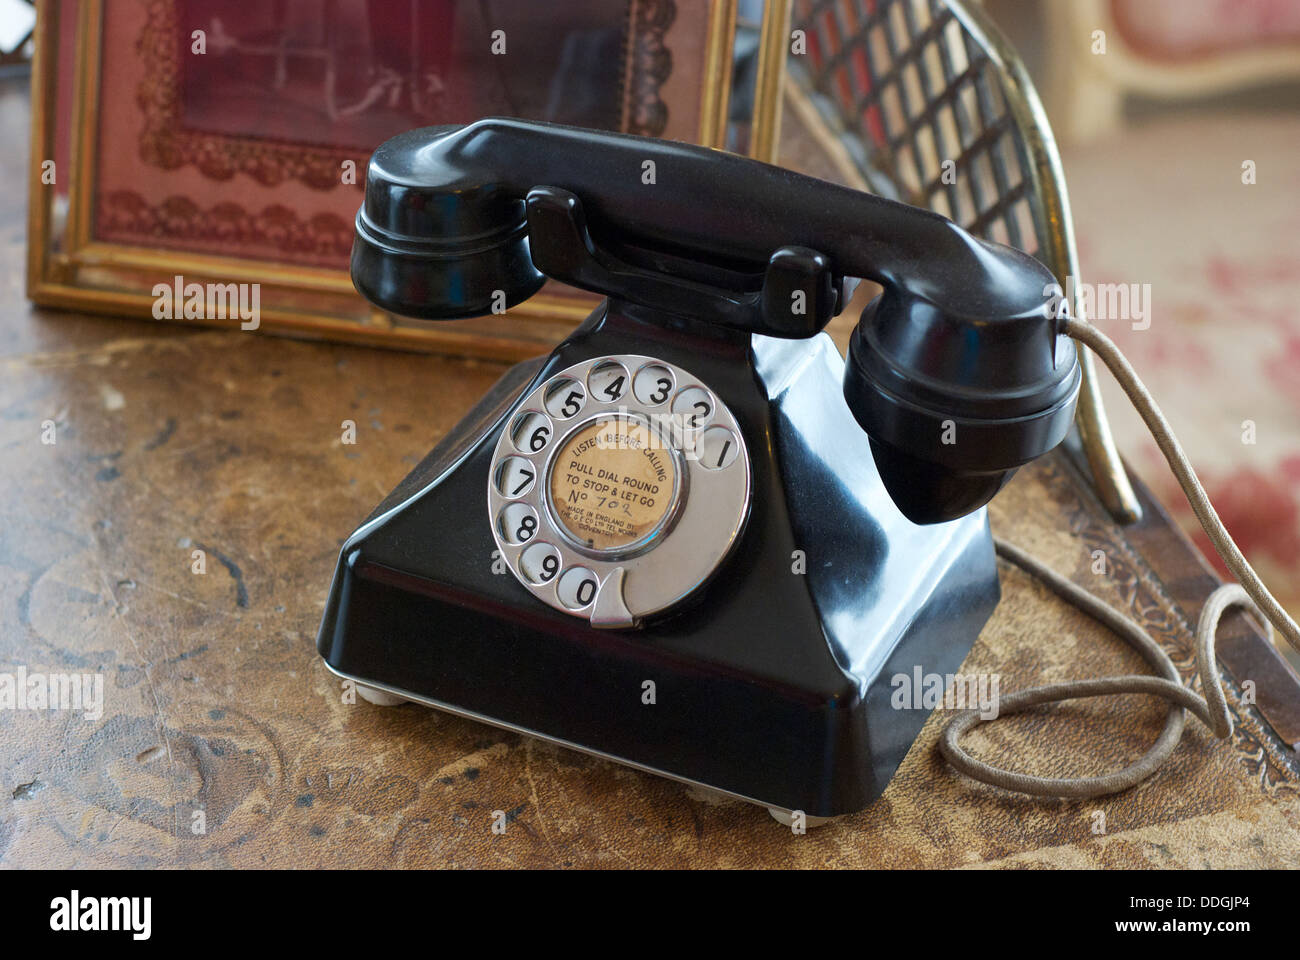 Retro vintage old bakelite telephone on a side table in a british country house - Stock Image